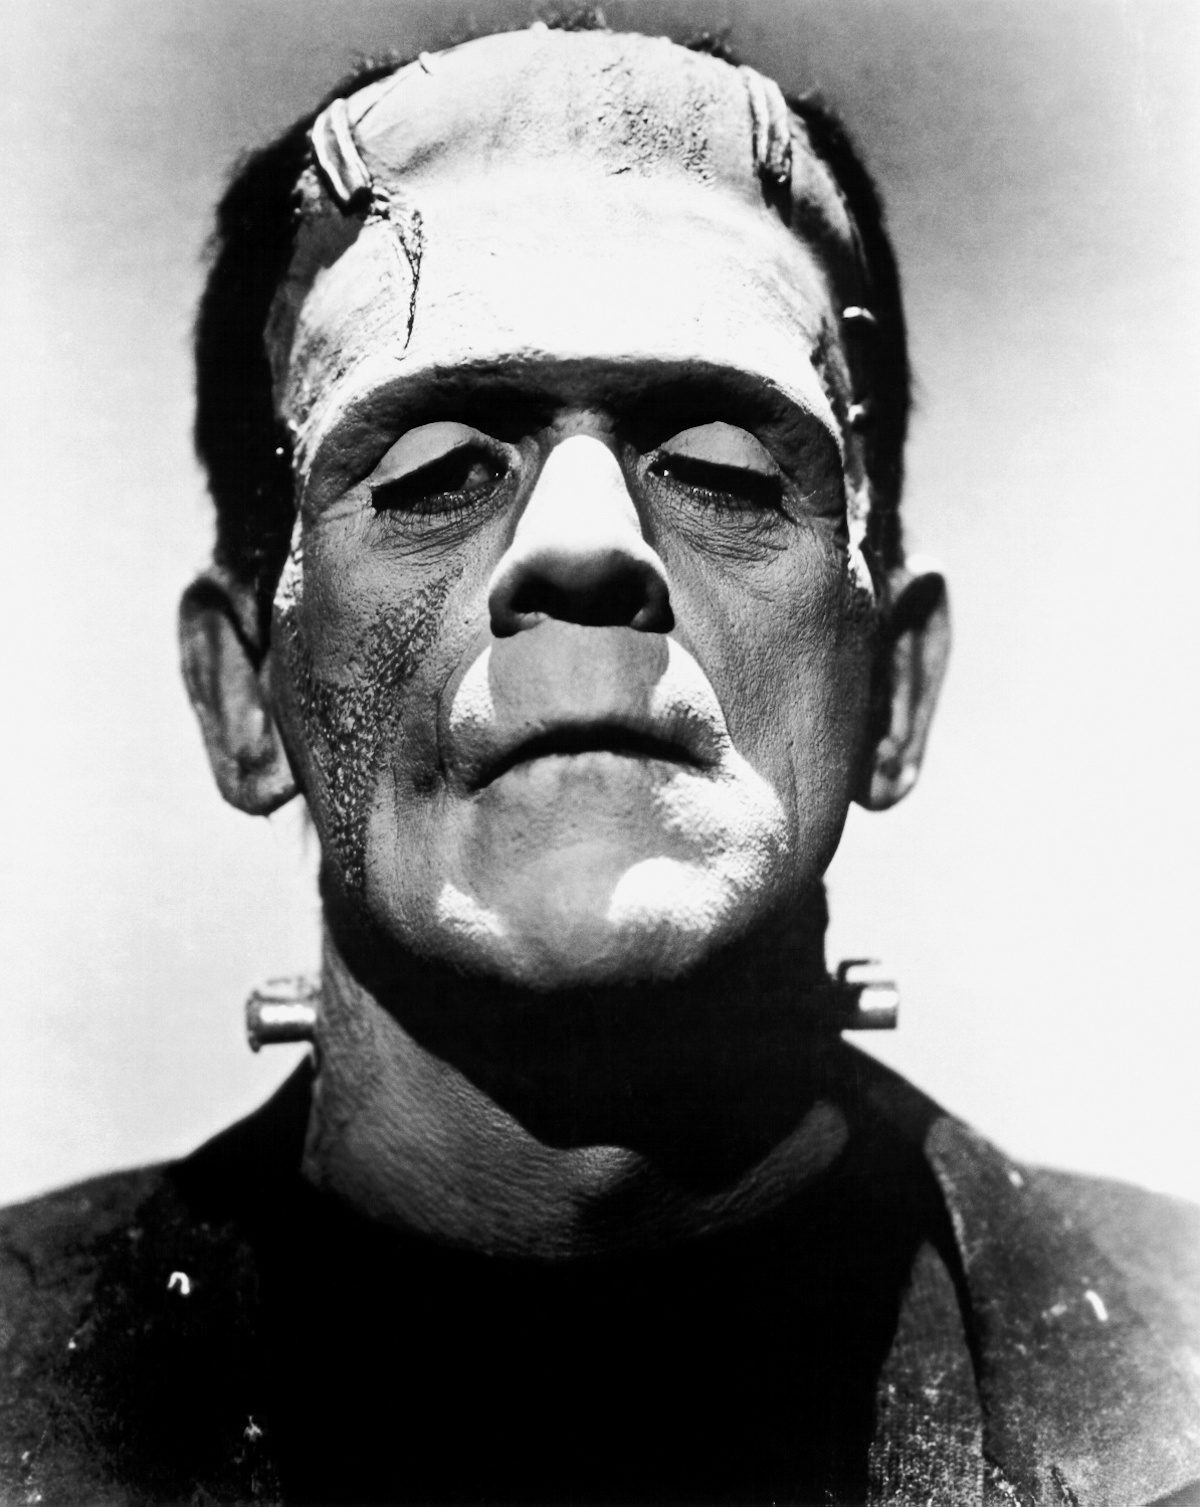 Boris Karloff, Frankenstein, James Whale, Public Domain